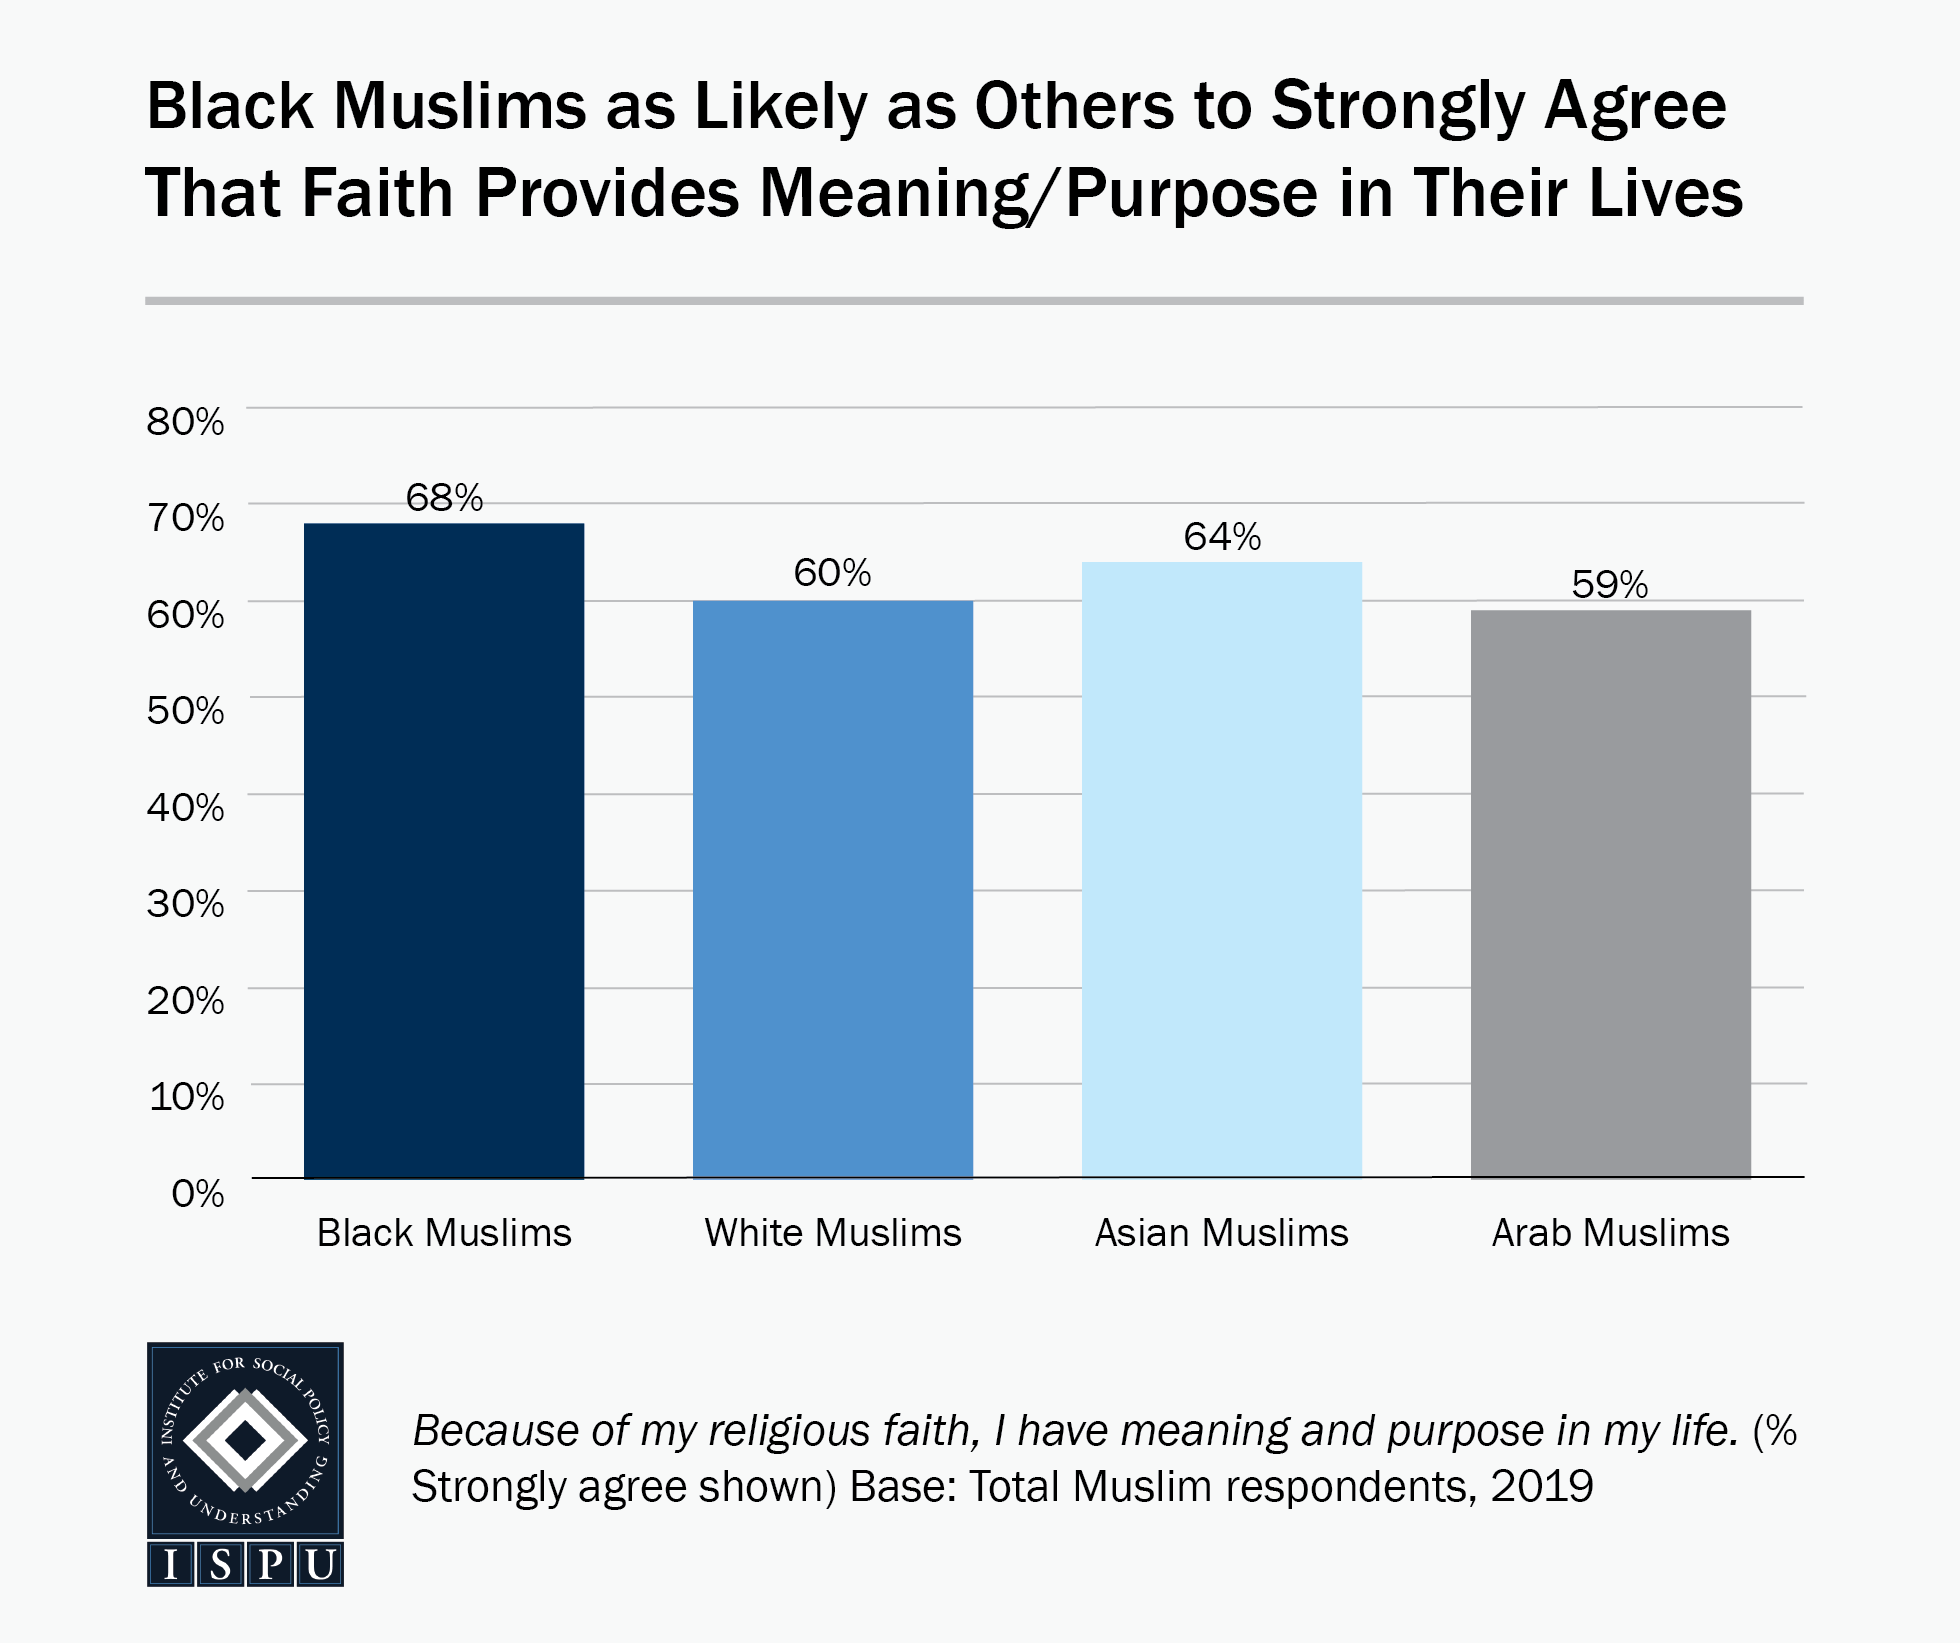 Bar graph showing that Black Muslims (68%) are as likely as others (59%-64%) to strongly agree that faith provides meaning and purpose in their lives